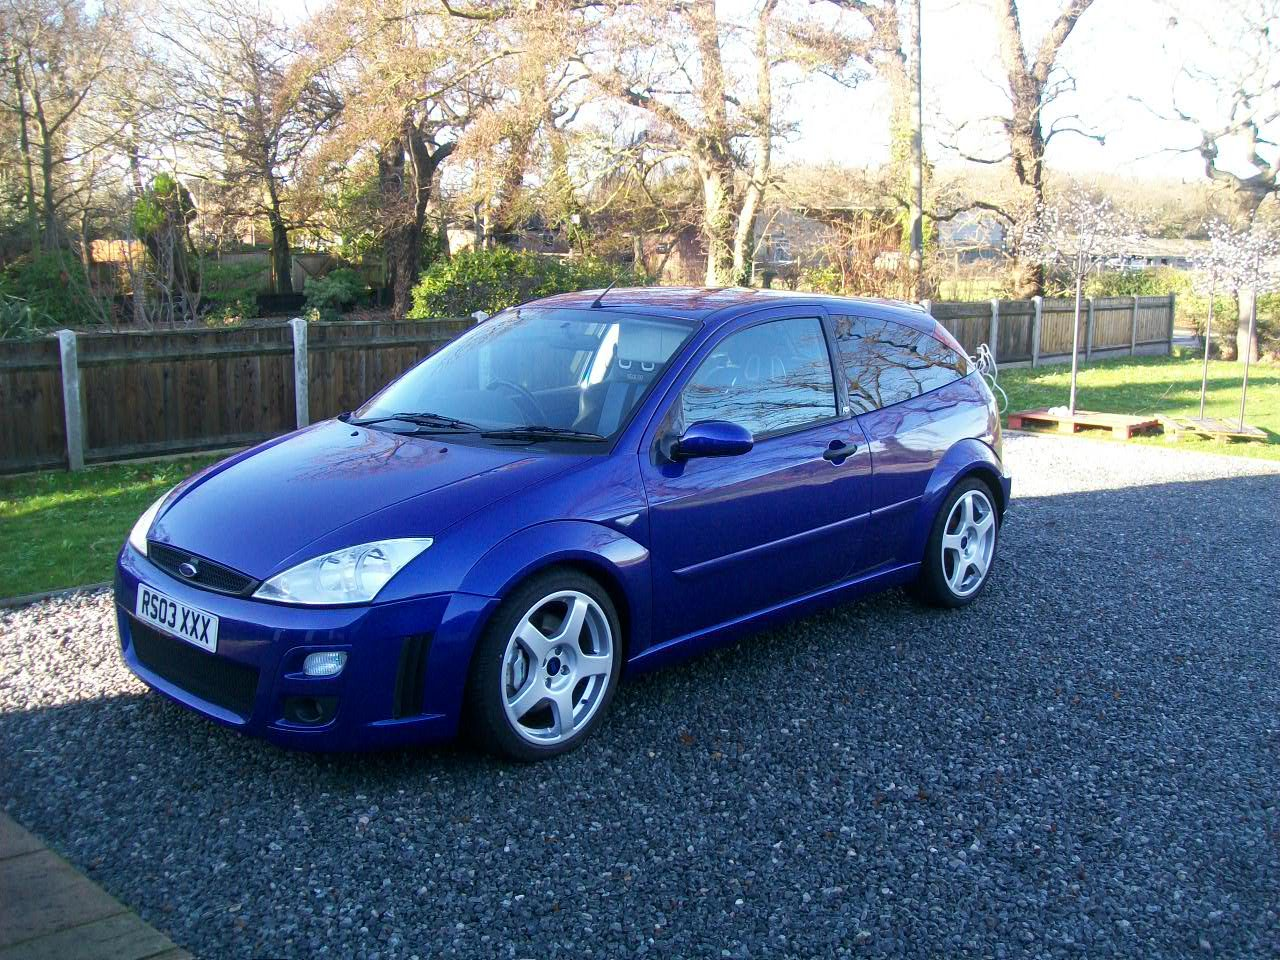 2003 Ford focus rs mk1 For Sale (picture 1 of 4)